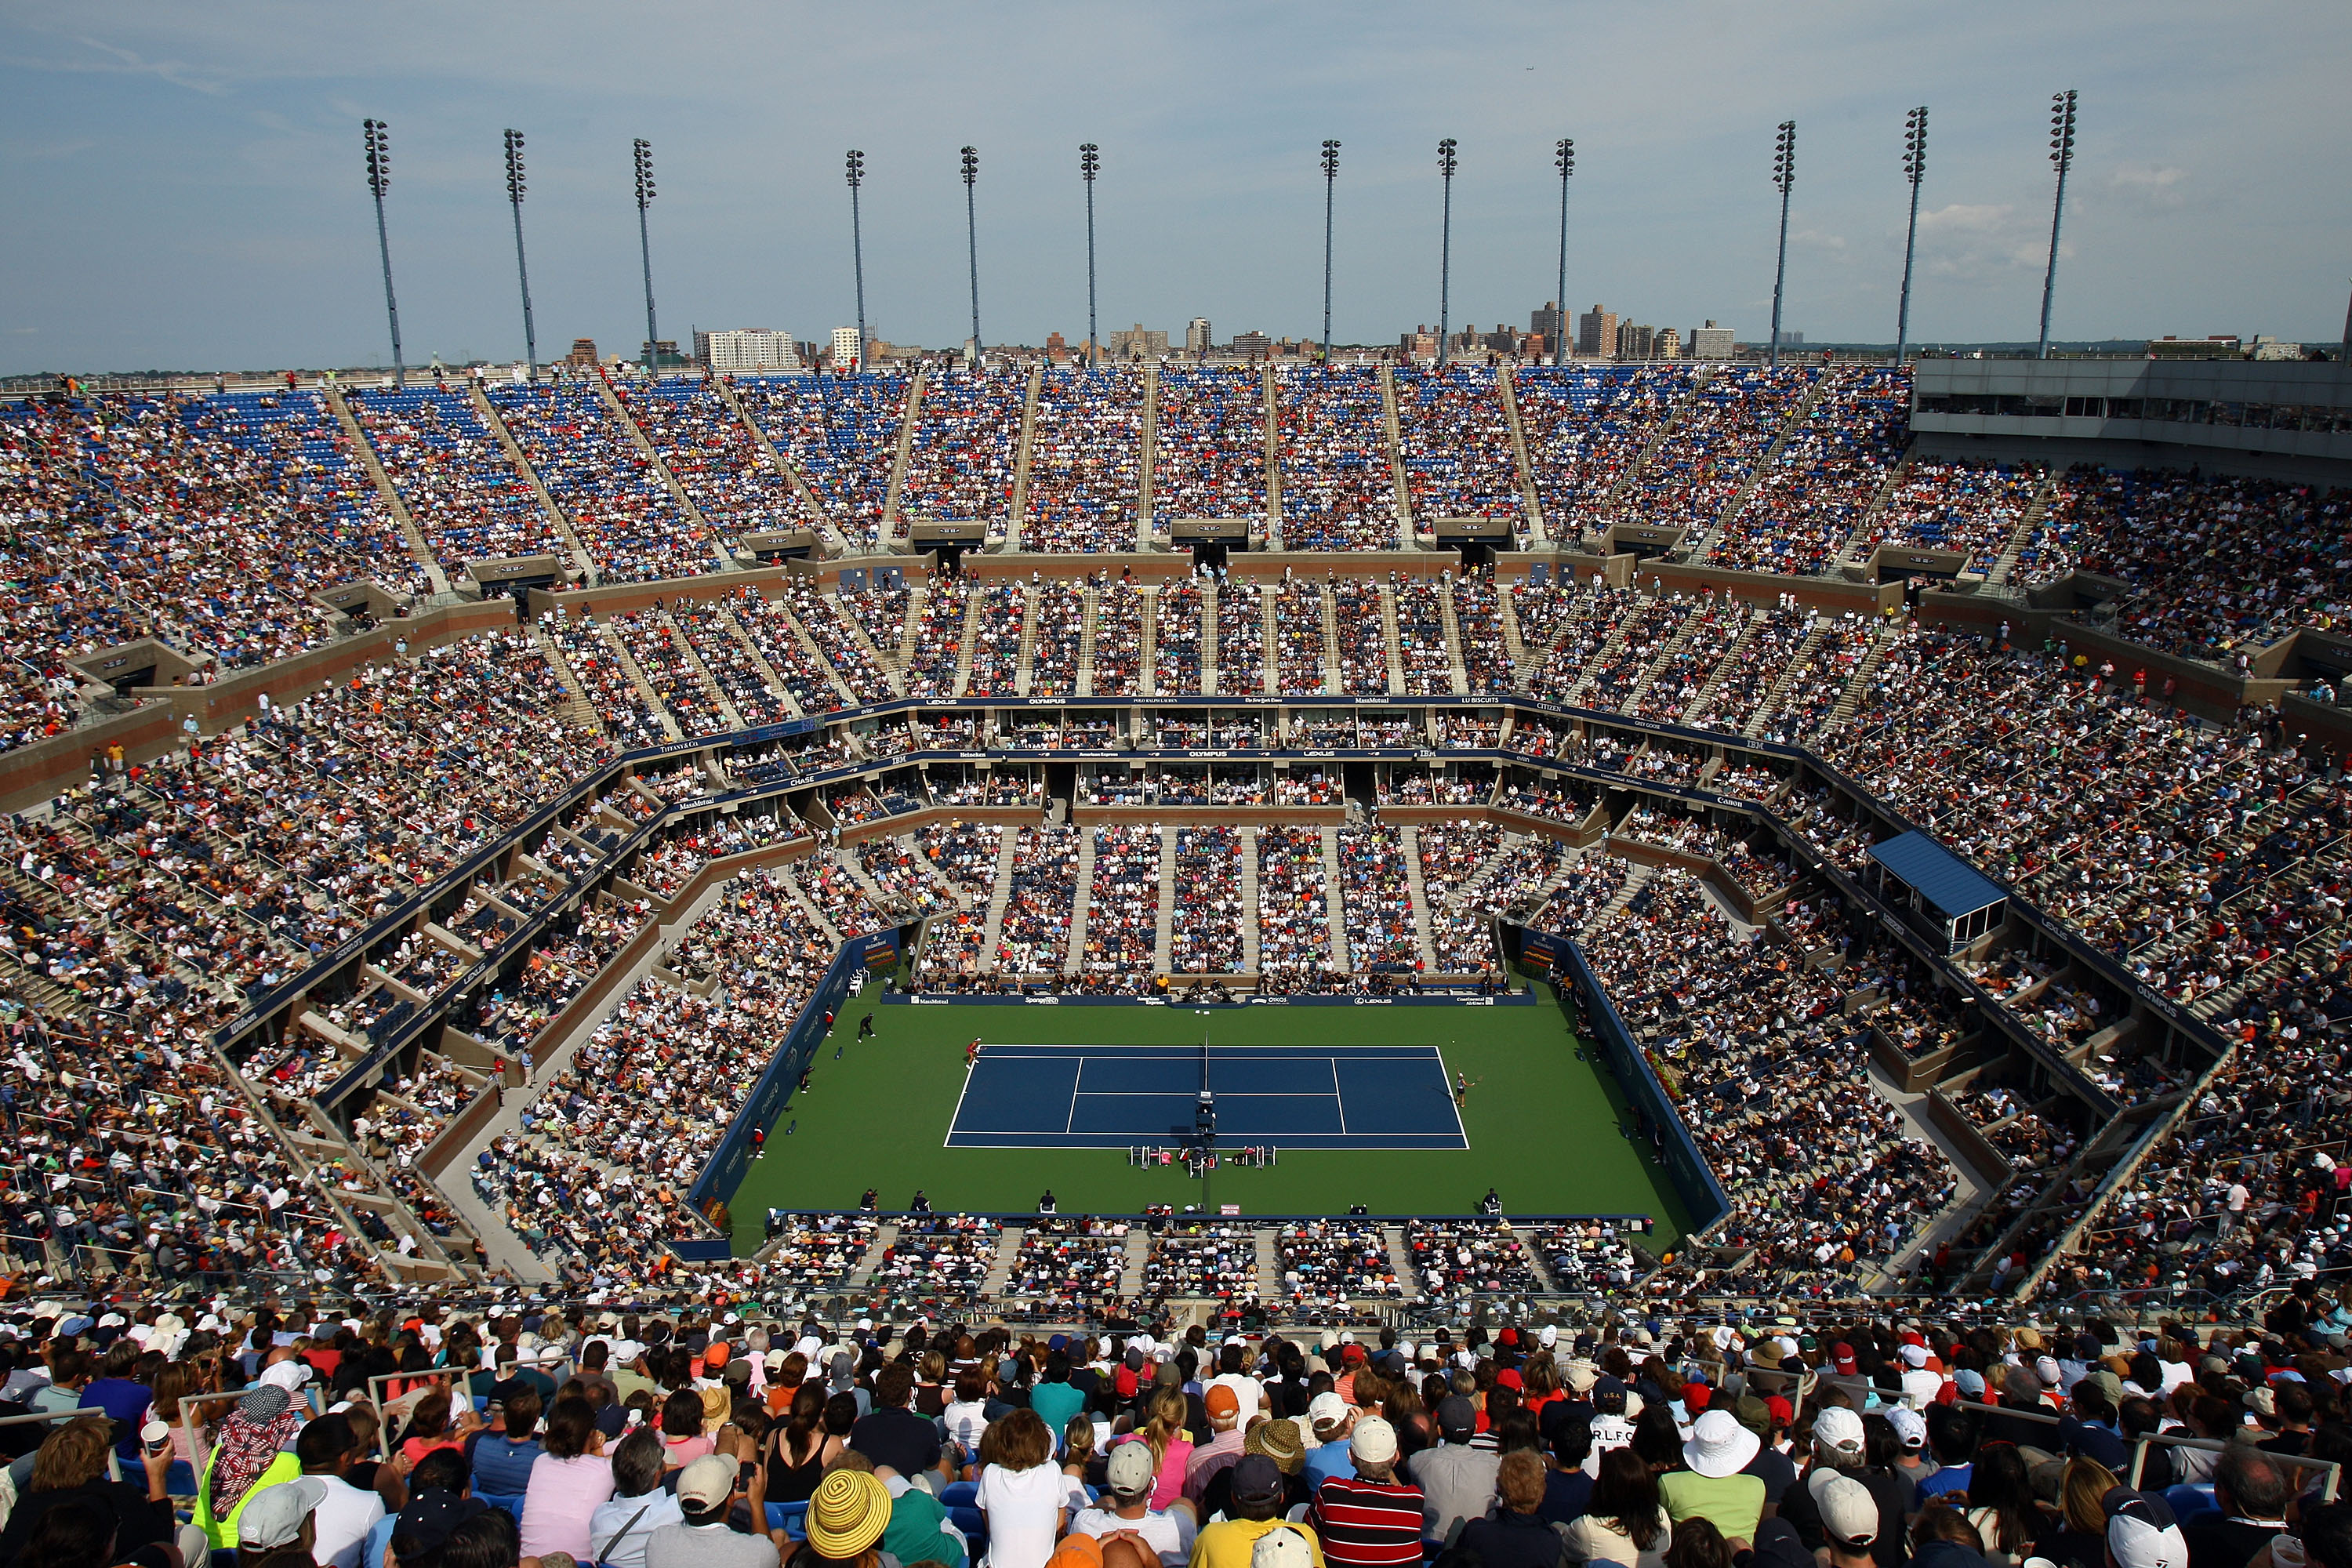 NEW YORK - SEPTEMBER 07:  A view from above of the Melanie Oudin of the United States vs Nadia Petrova of Russia match at Arthur Ashe Stadium during day eight of the 2009 U.S. Open at the USTA Billie Jean King National Tennis Center on September 7, 2009 i